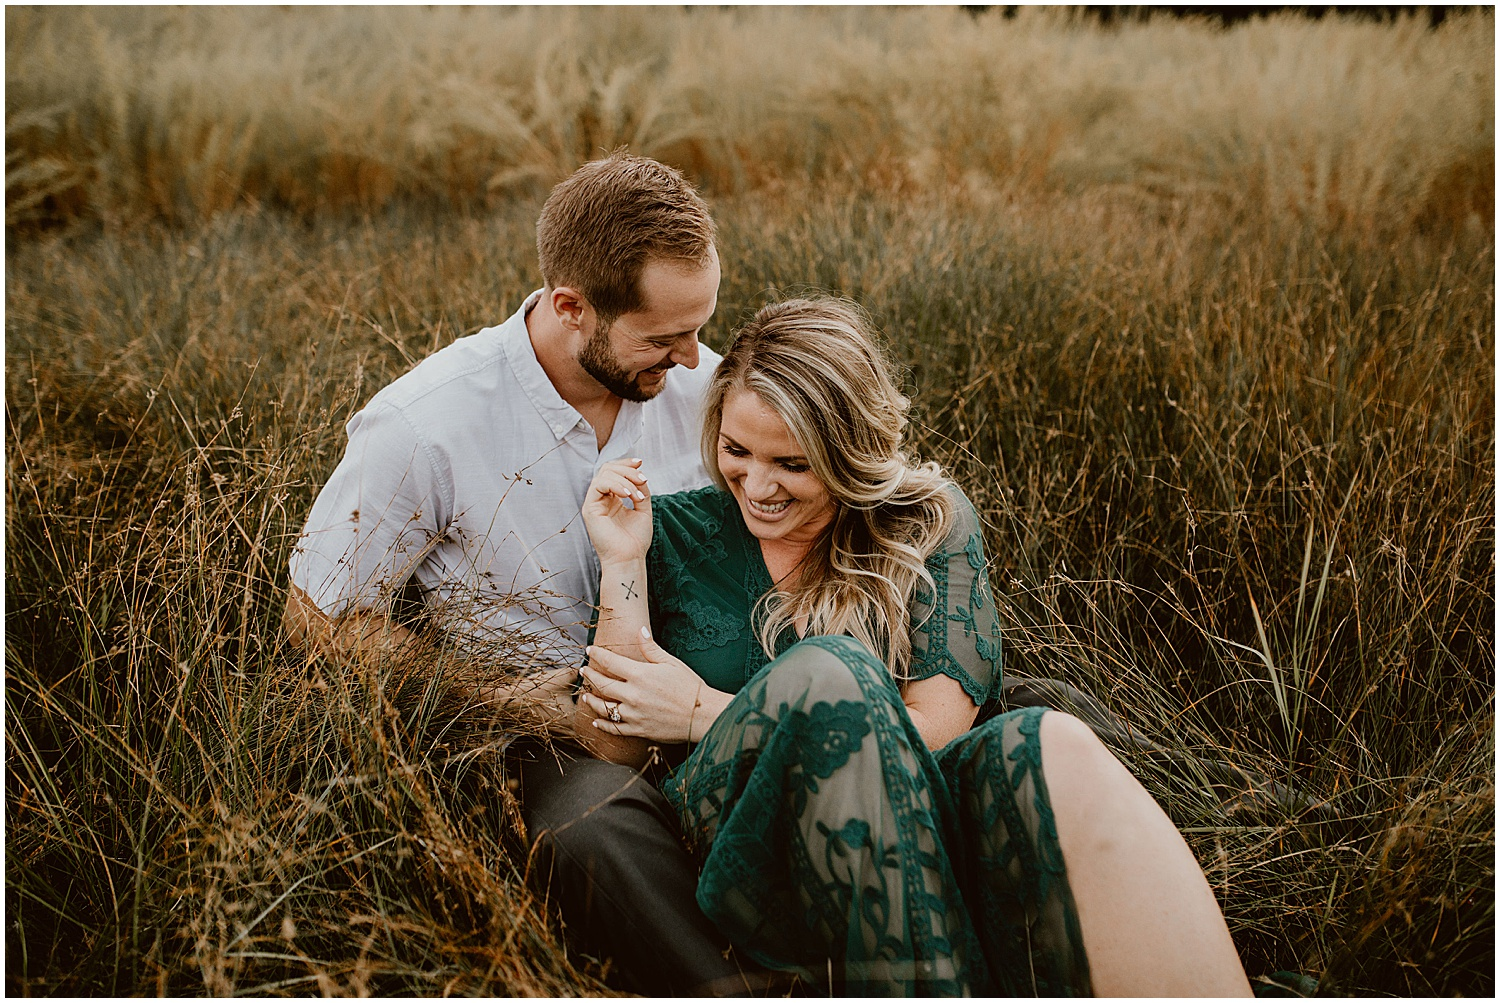 Palomar-Mountain-Engagement-D+M-Diana-Lake-Photography-52.jpg